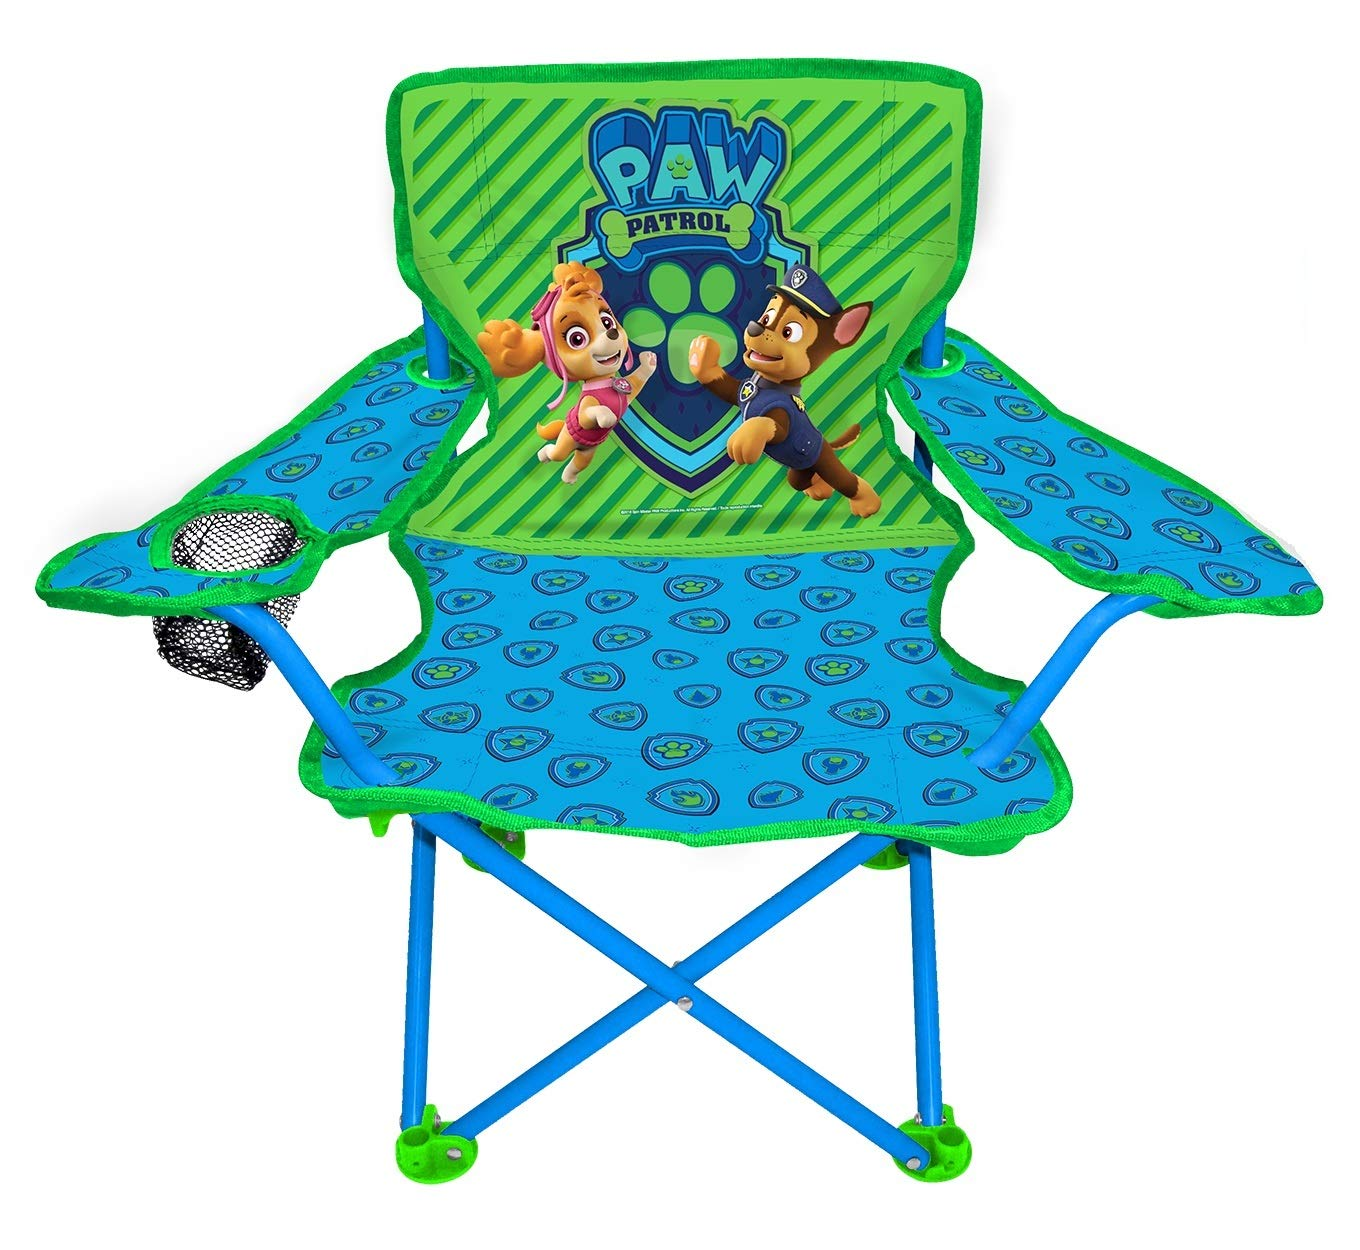 Jakks Pacific Paw Patrol Neutral Camp Chair for Kids, Portable Camping Fold N Go Chair with Carry Bag by Jakks Pacific